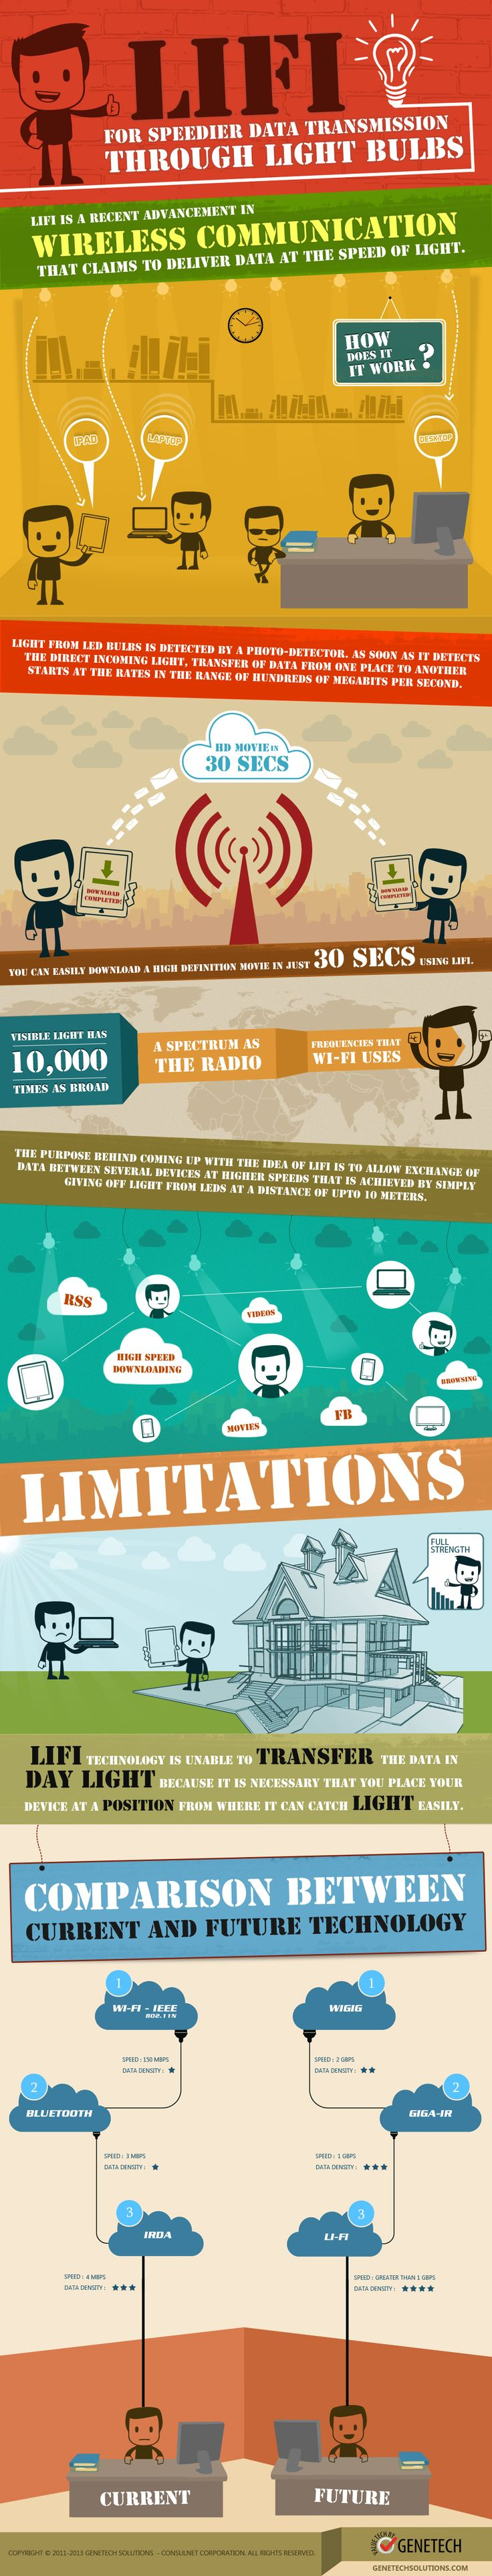 LiFi - For Speedier Data Transmission Through Light Bulbs #Infographic #Technology #WiFi